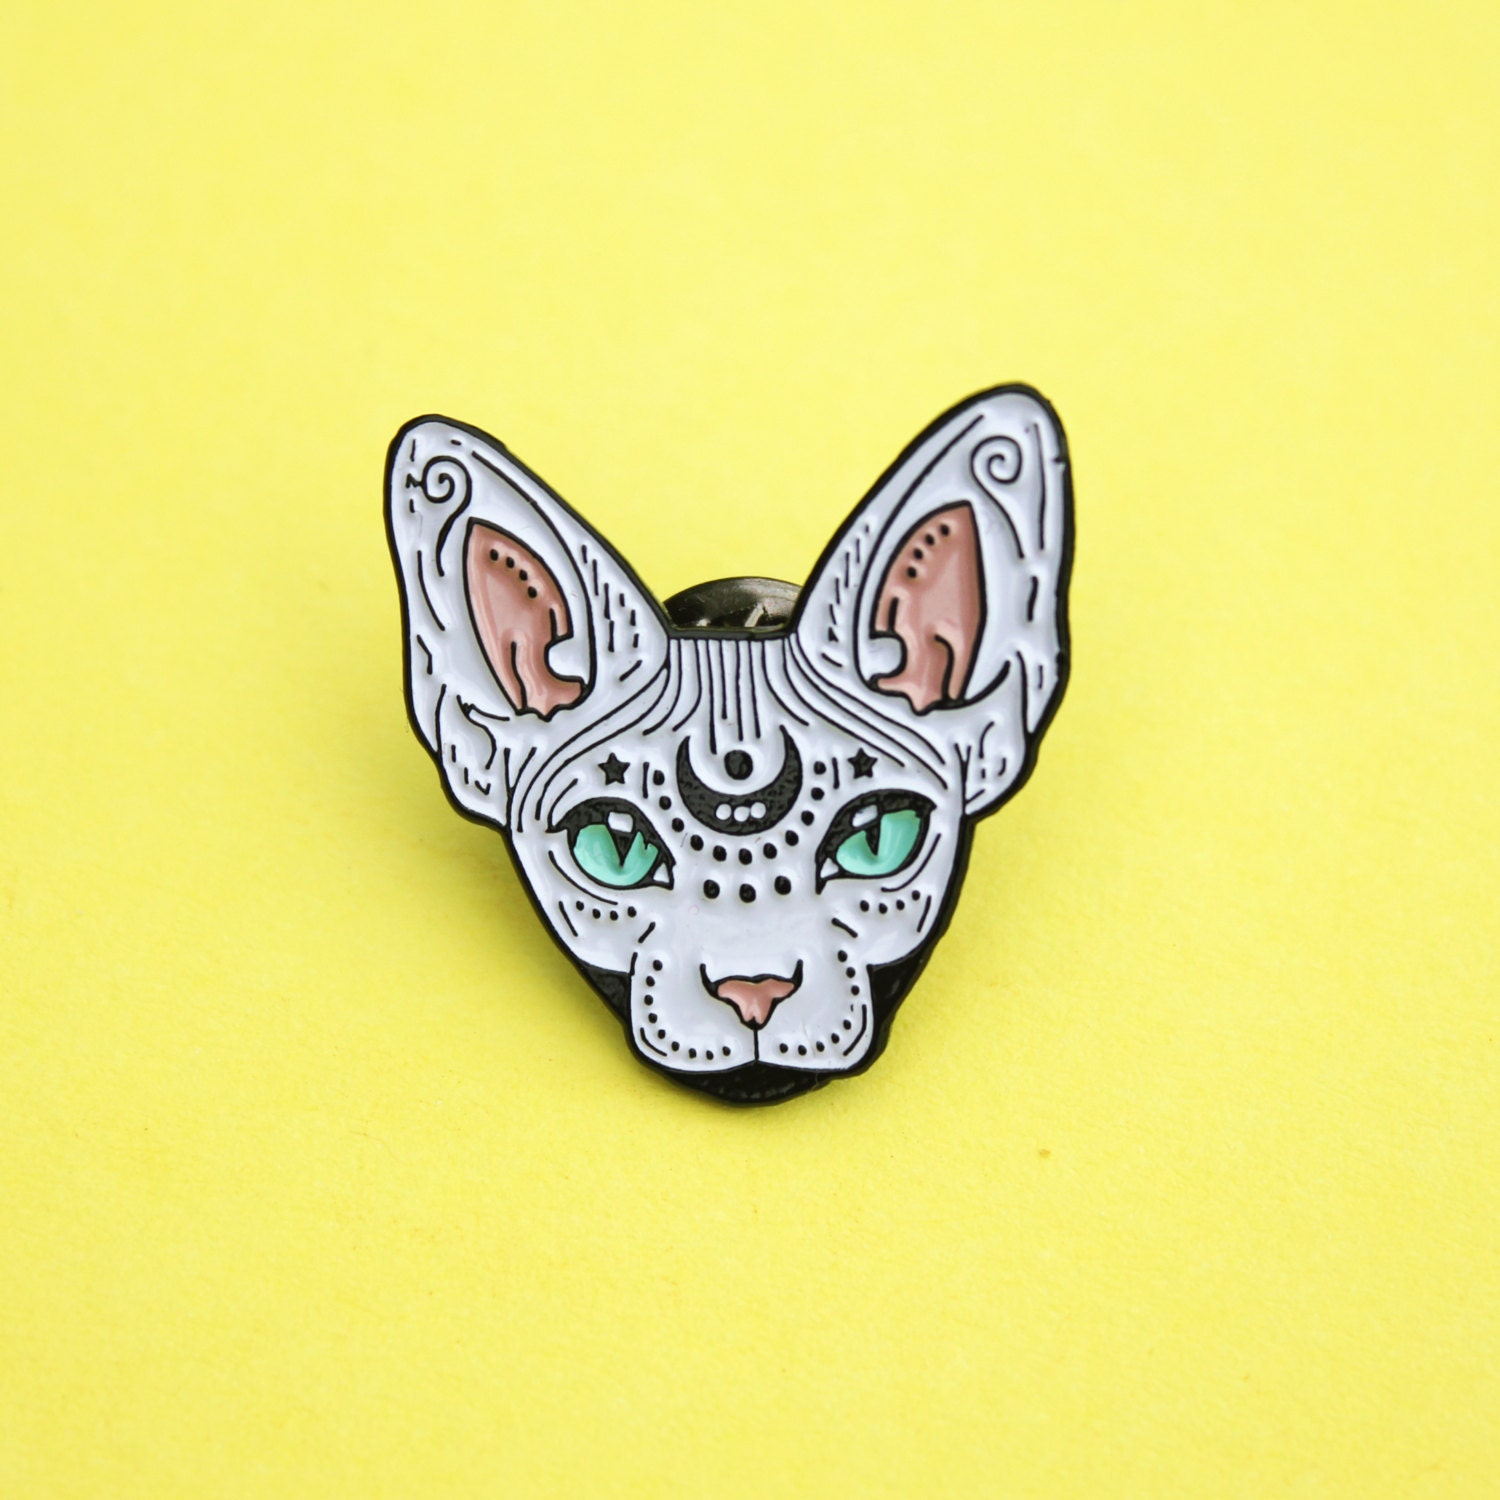 Mystical Sphynx cat enamel pin WHITE hairless cat cat